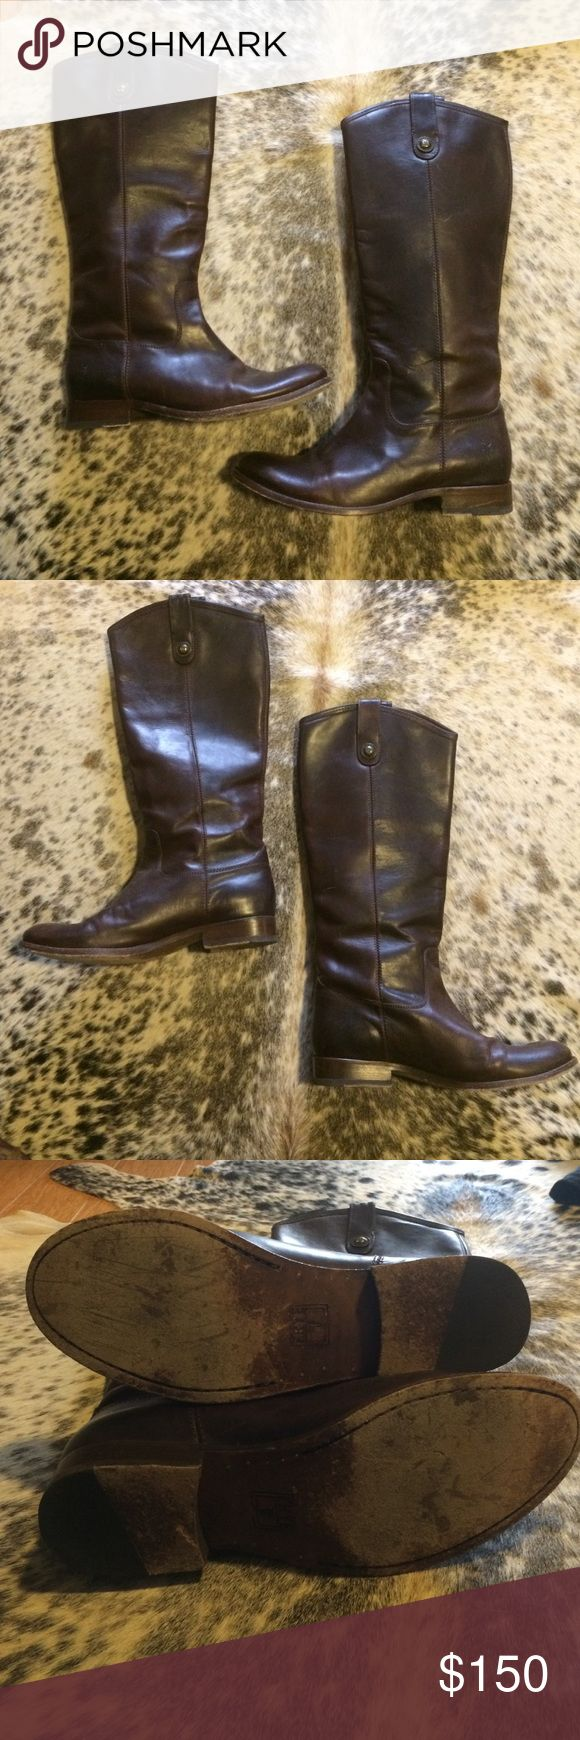 Brown Frye Melissa Riding Boot Worn a handful of times - check picture for sole wear. Frye Shoes